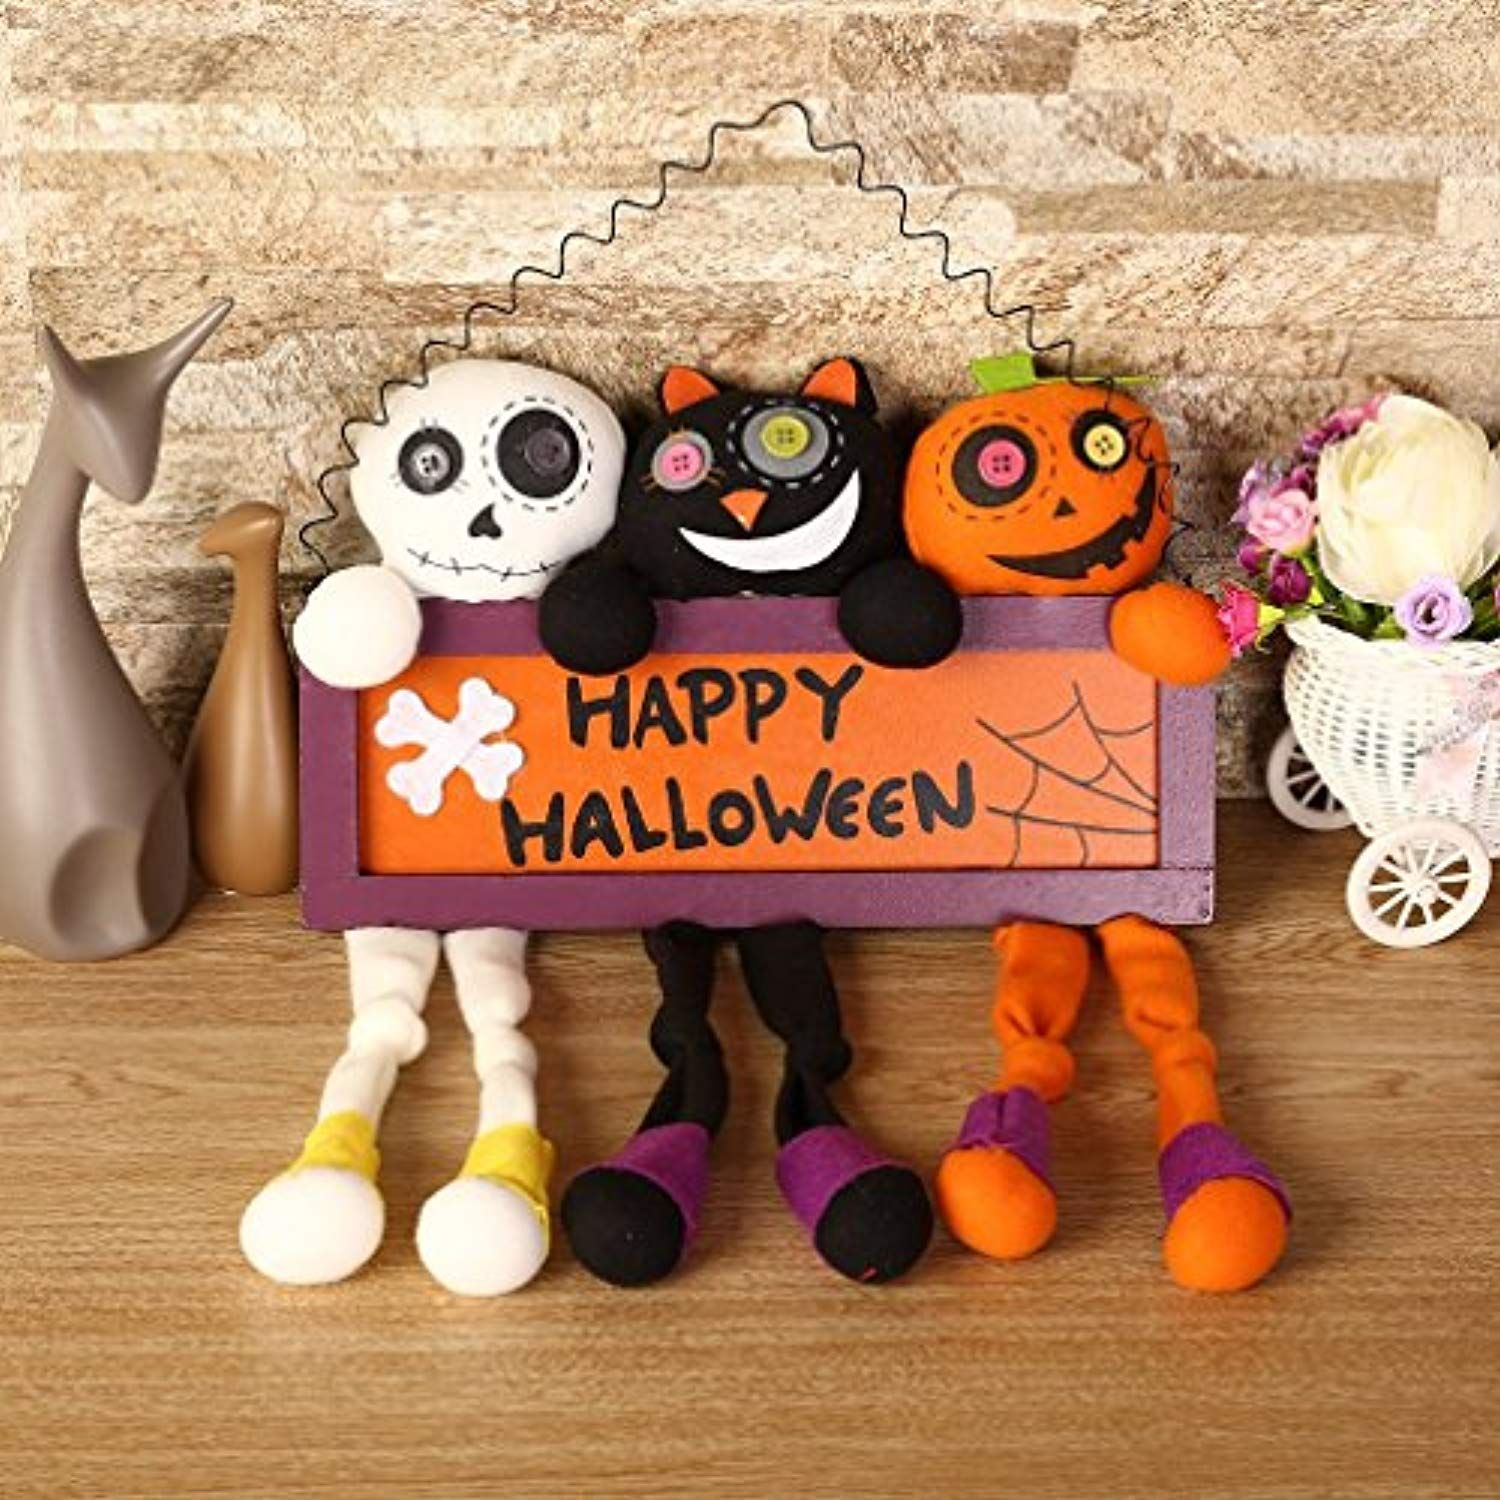 Halloween Decorations 3 In 1 CHildren Toy Dolls U-Kiss Hanging Tag - halloween window decor